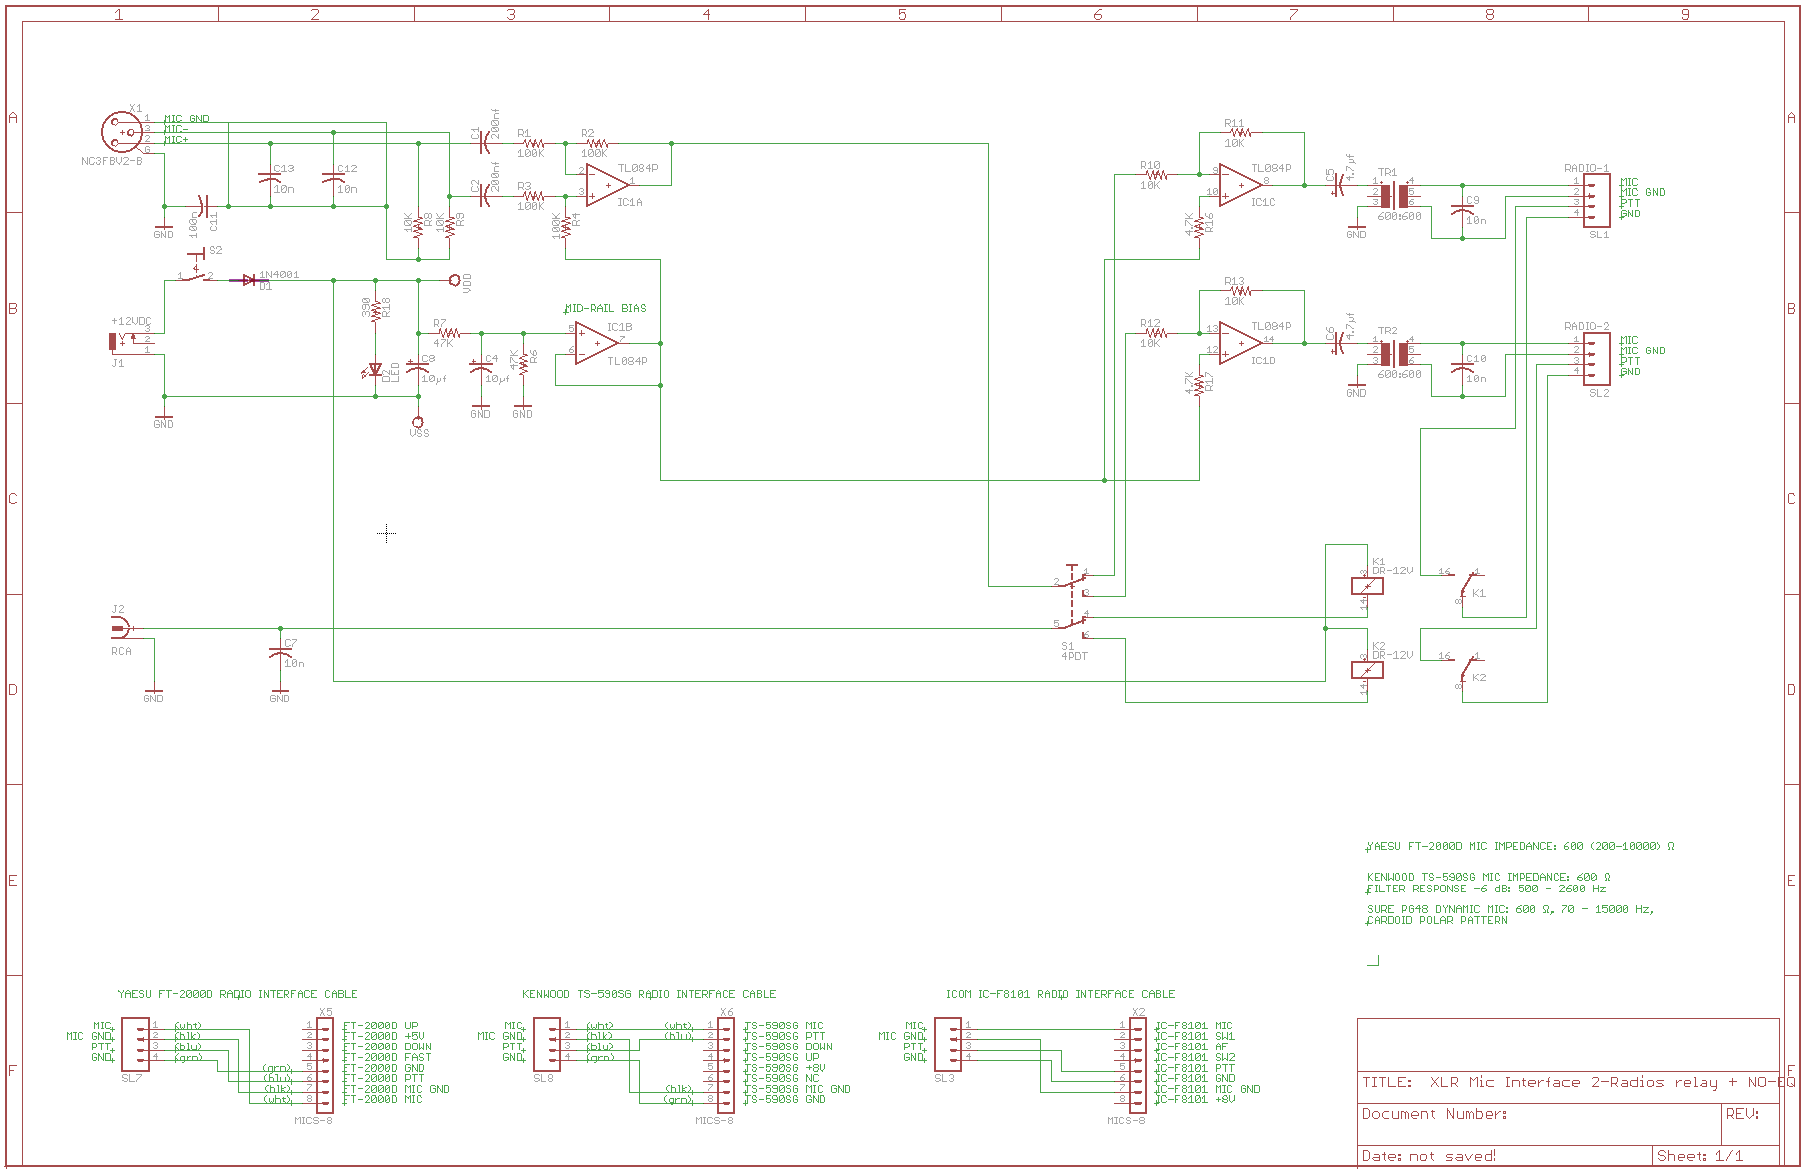 xlr schematic  the above was implemented using a shure pg-48 microphone  with good results  although vox operation is not commonly used with the  author's